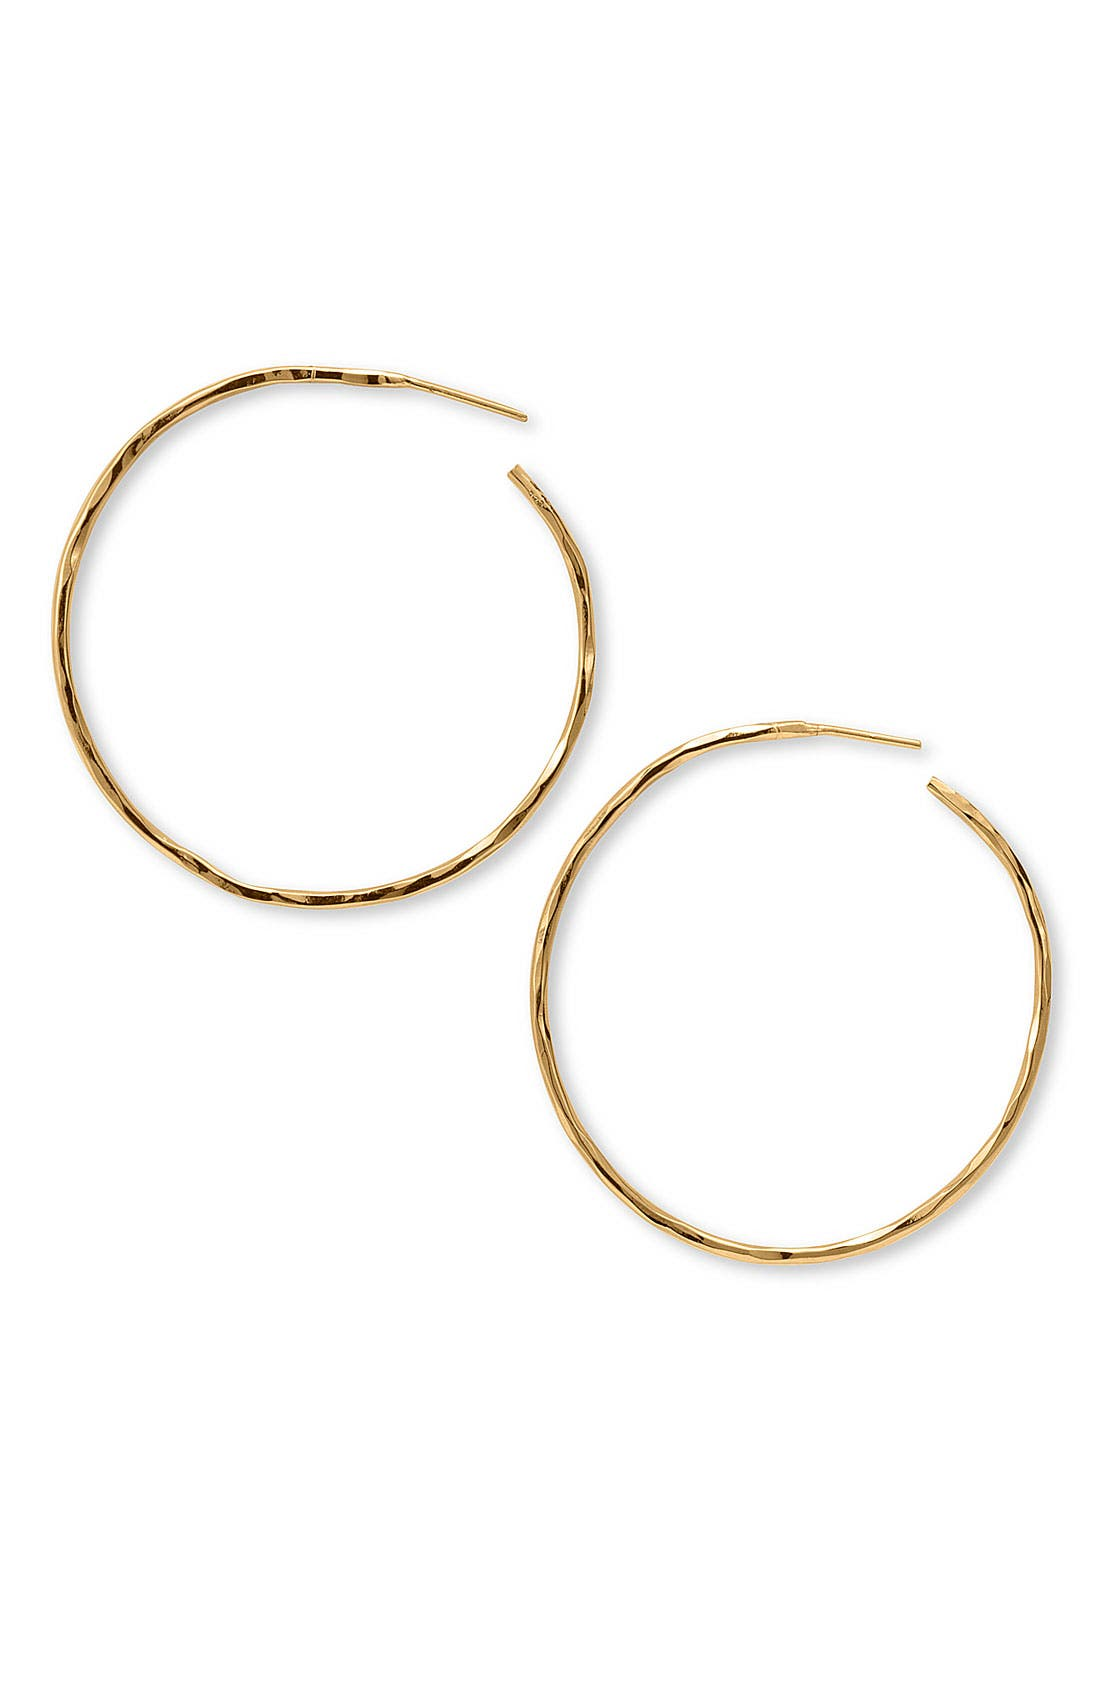 Alternate Image 1 Selected - Argento Vivo Hammered Large Hoop Earrings